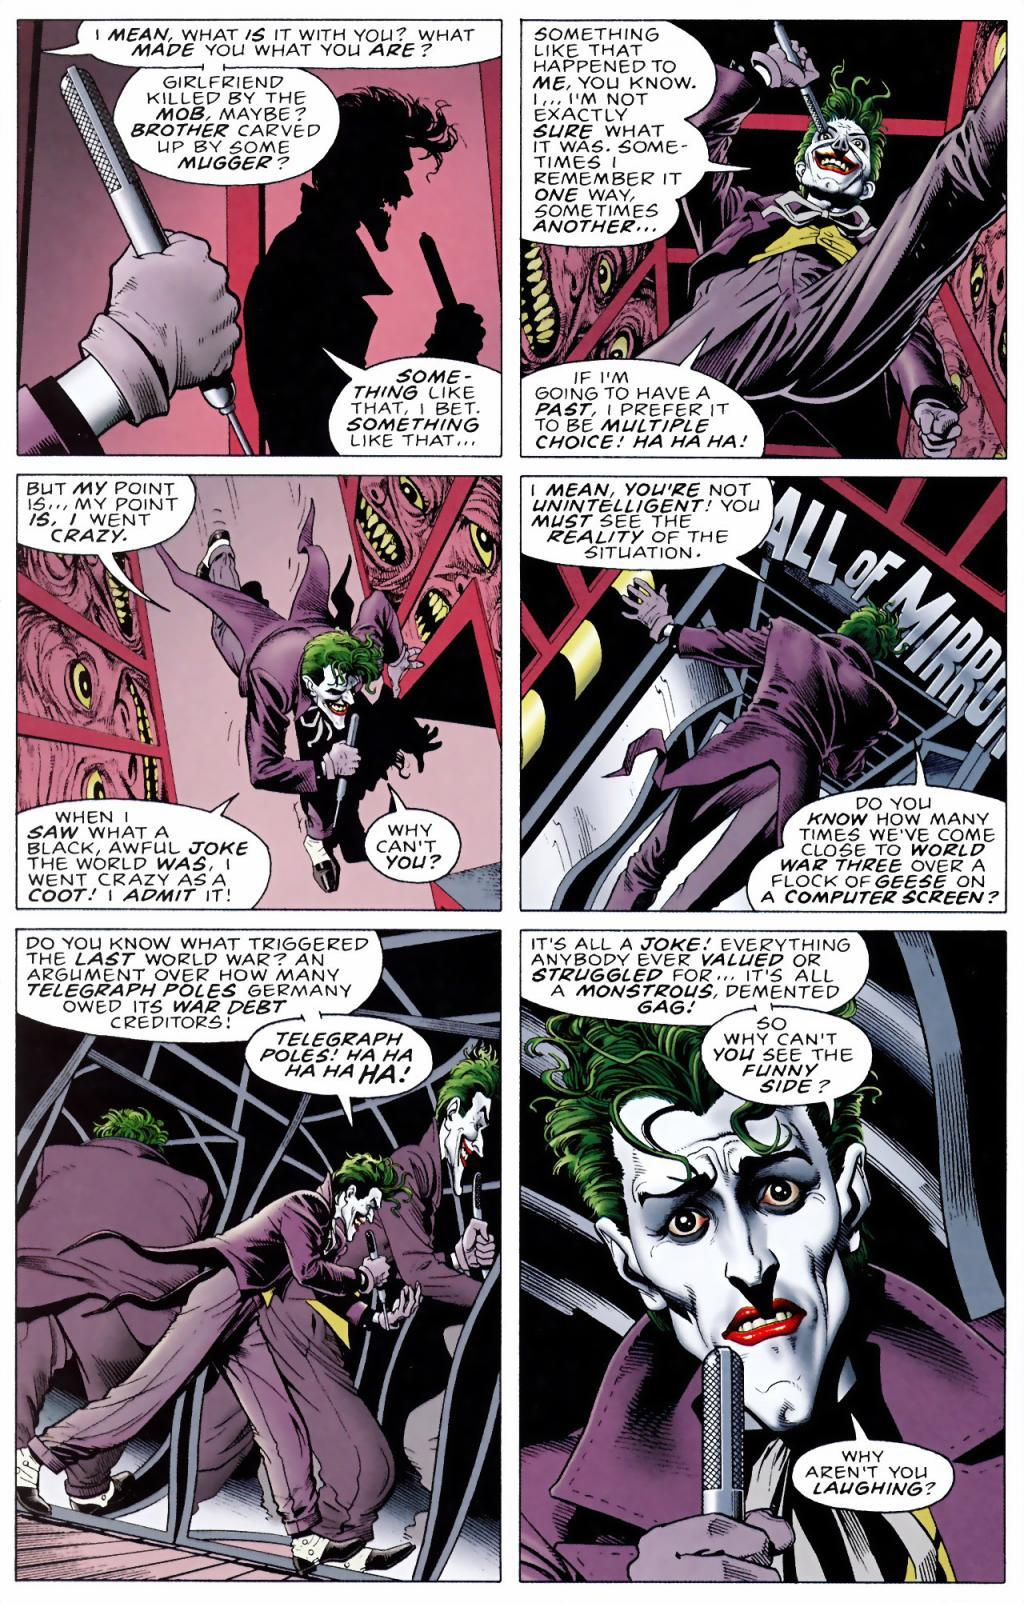 As good as the others were, when I read Joker dialogue, it's Mark Hamill I hear in my head.